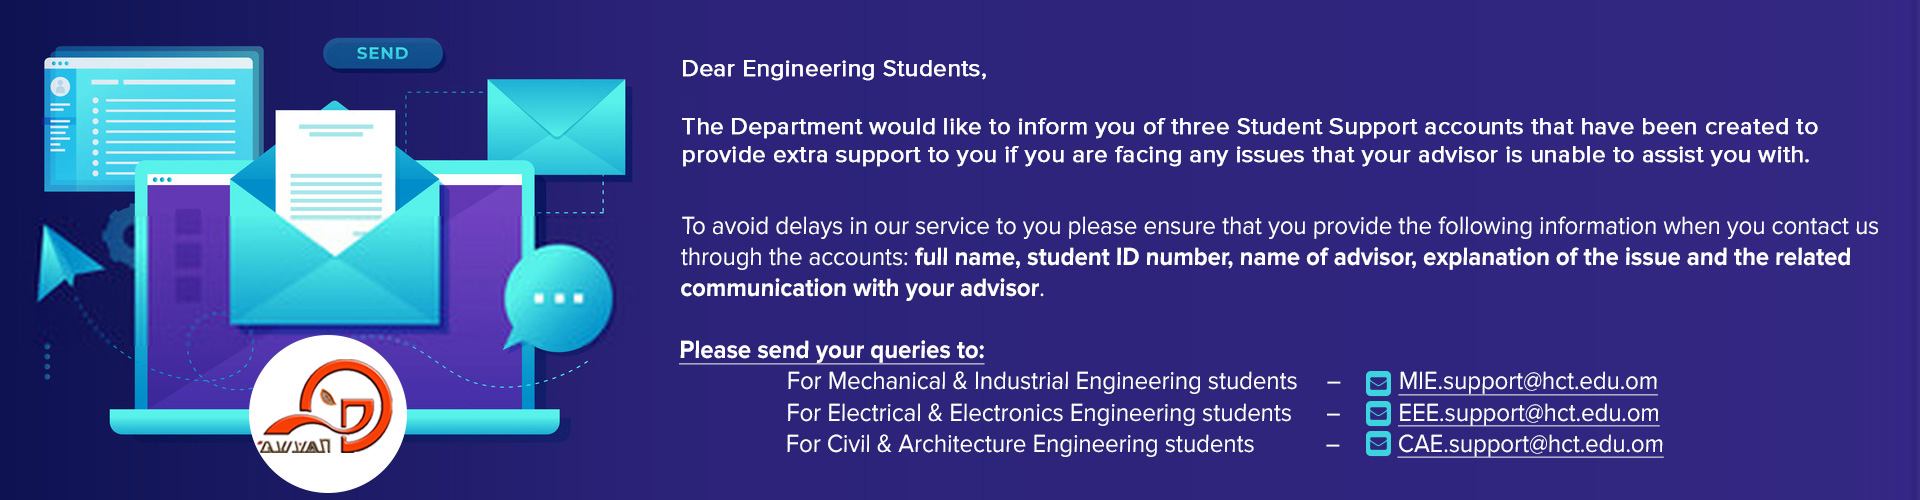 Engineering Department - Email Accounts for Student Support